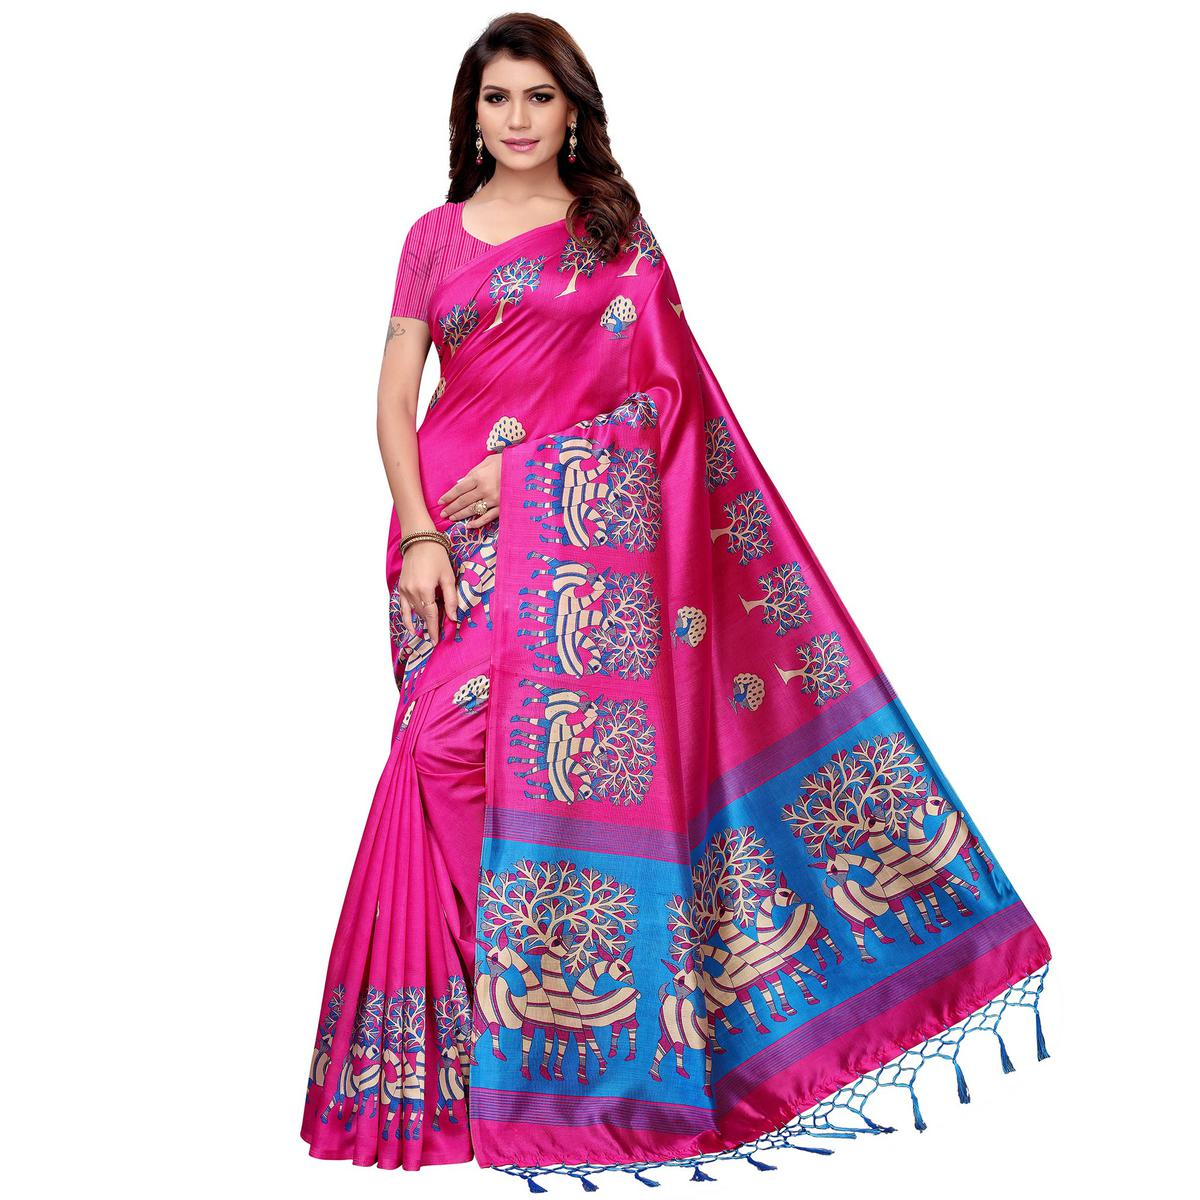 Sensational Pink Colored Festive Wear Art Silk Saree